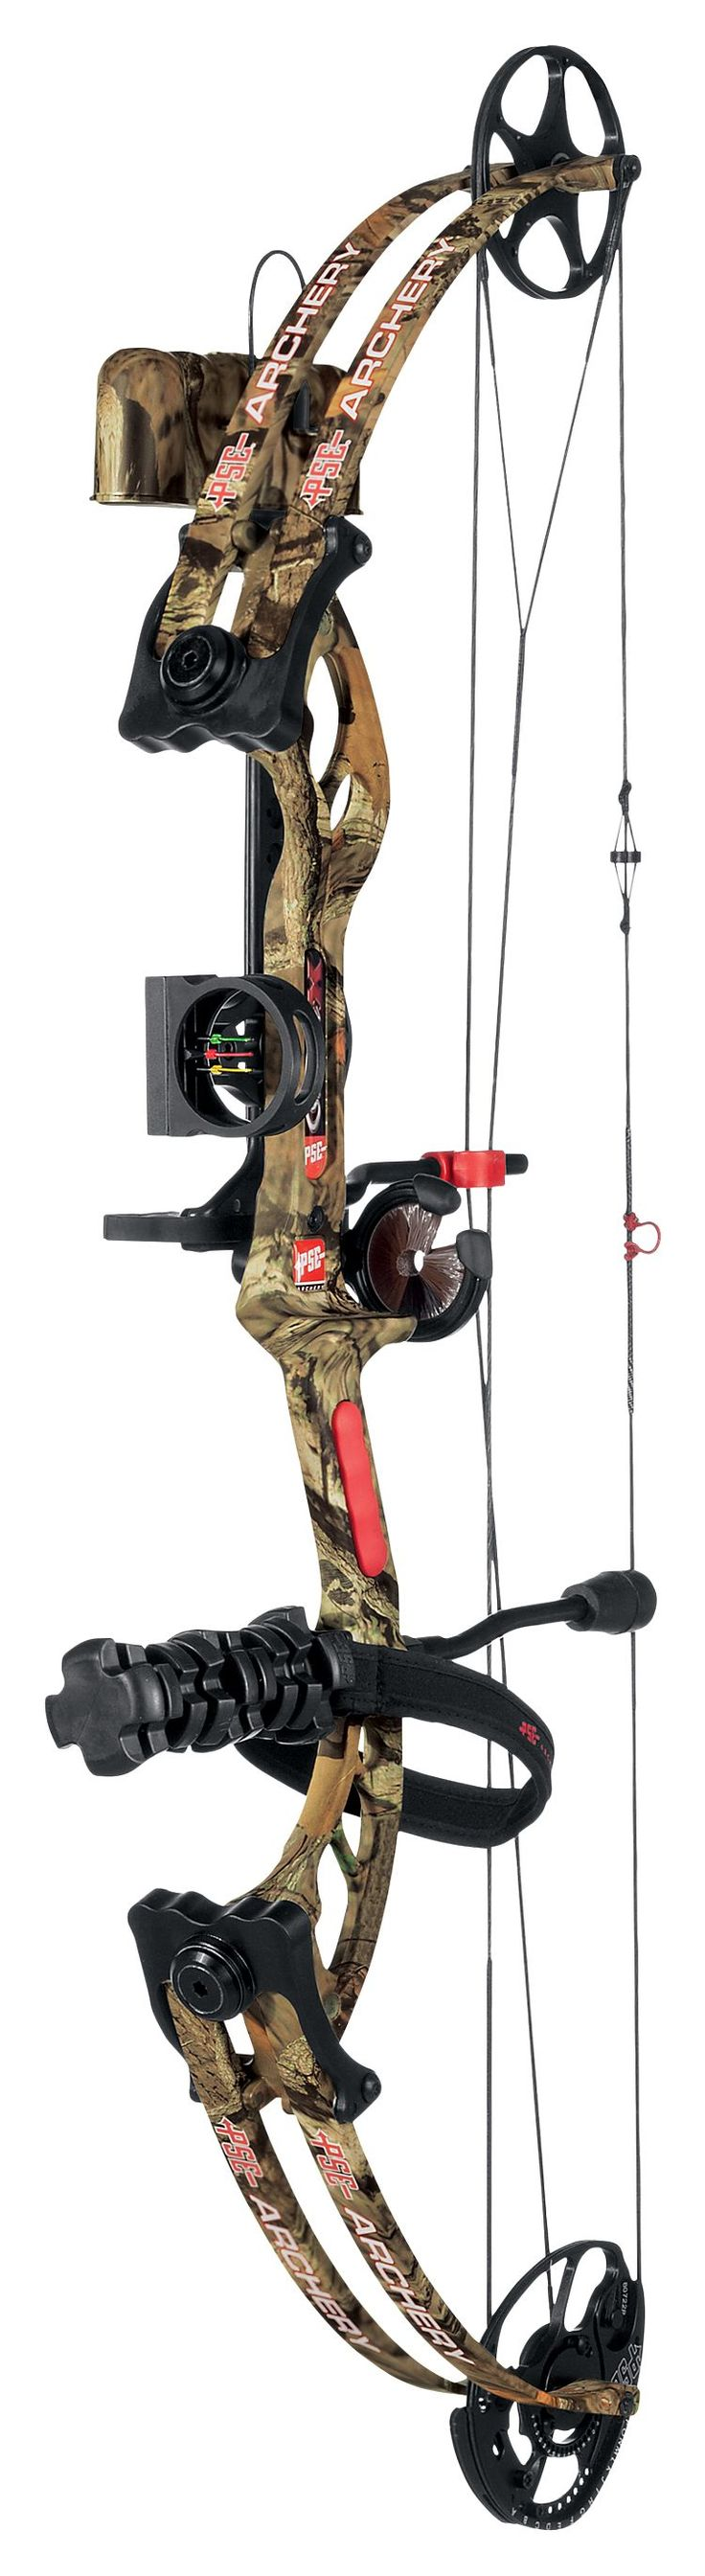 PSE Archery Stinger X RTS Compound Bow Package | Bass Pro Shops